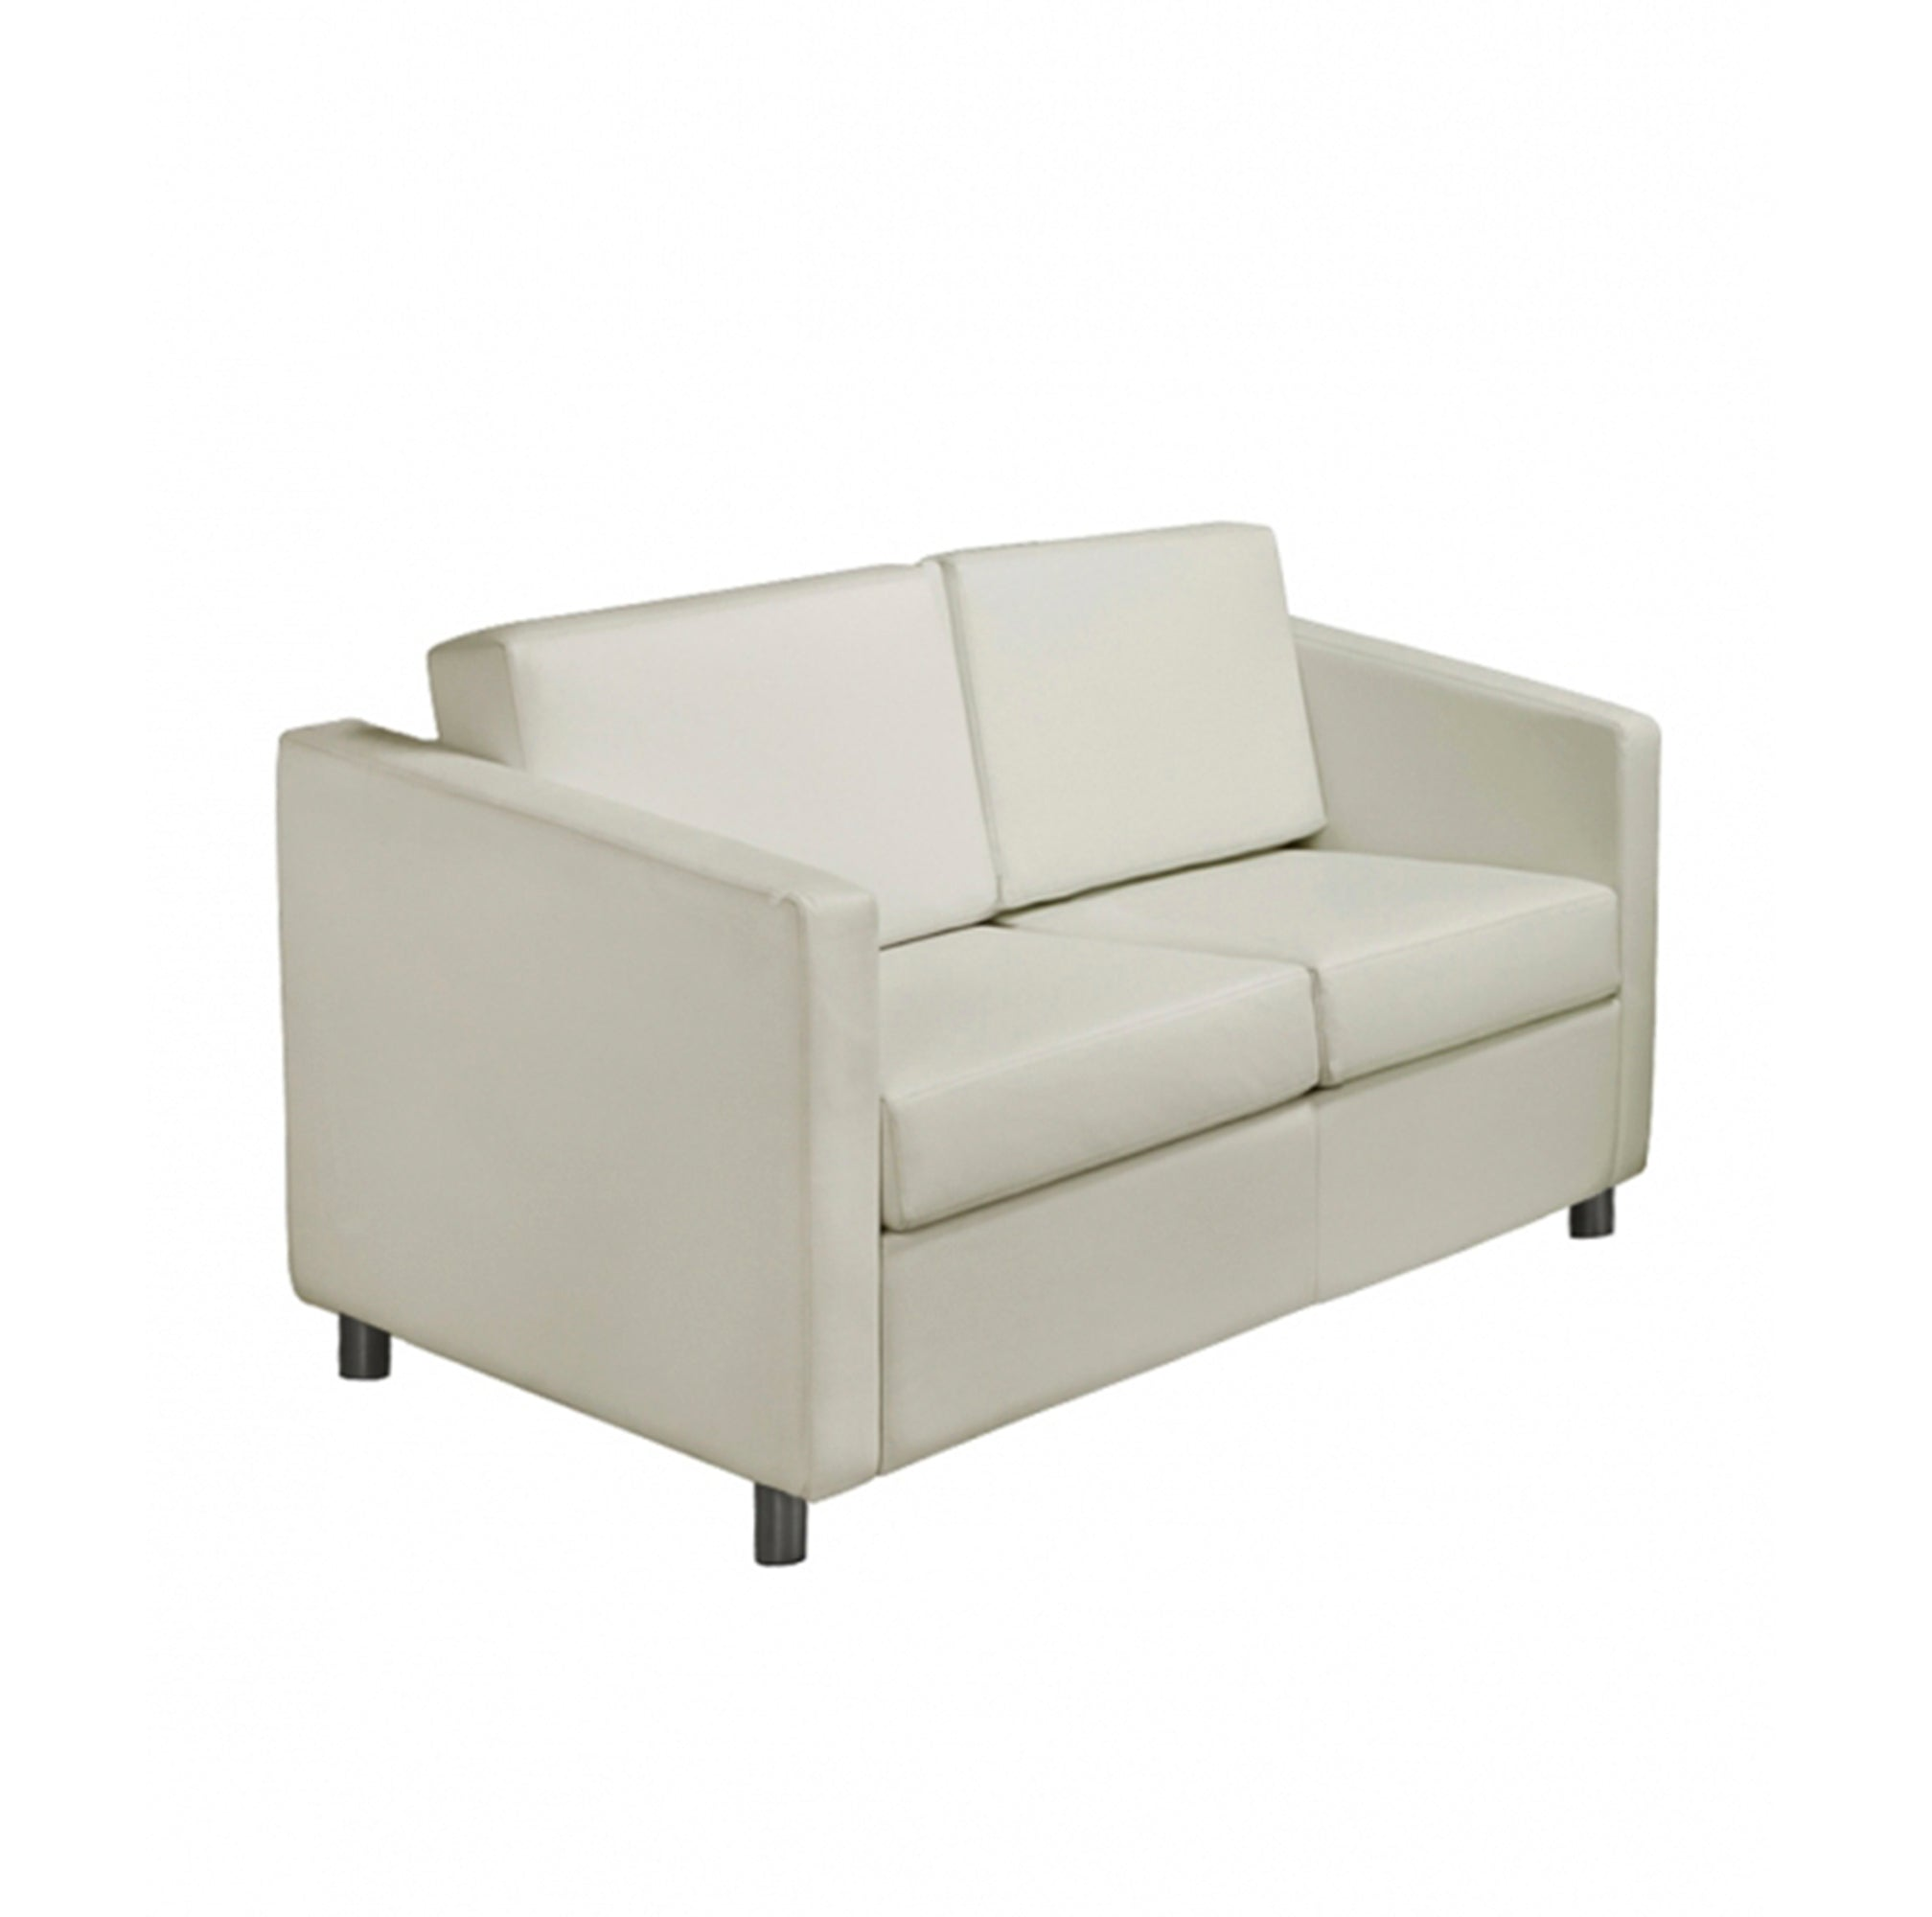 Danforth II Loveseat